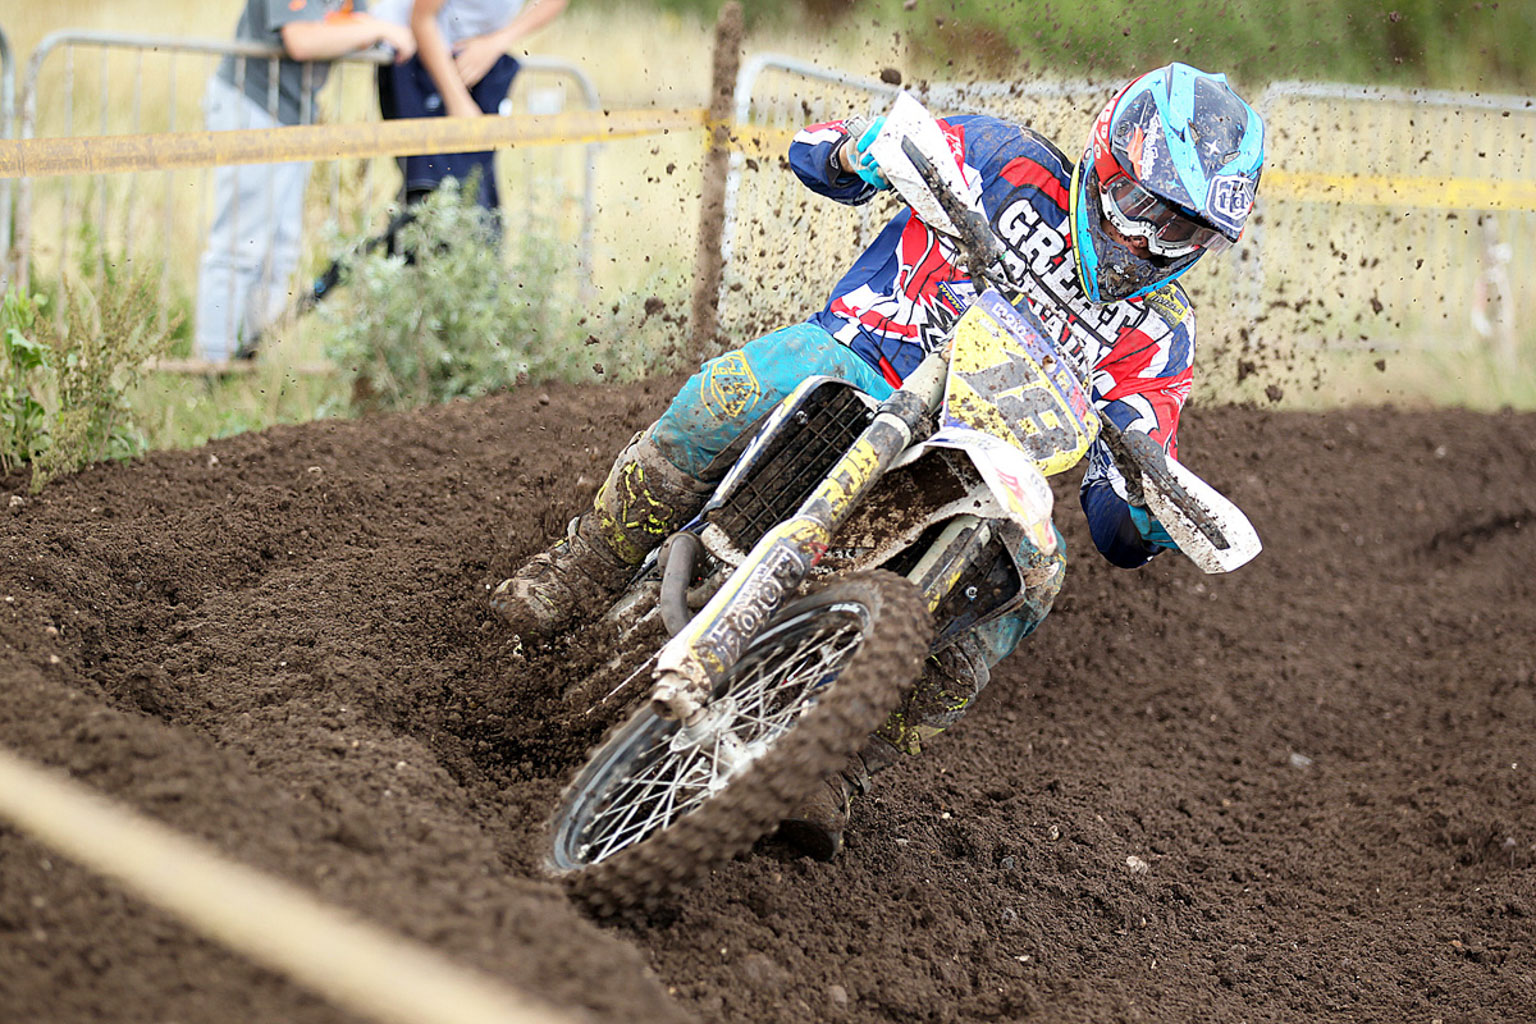 James Wainwright, 3rd in MX2 (1)